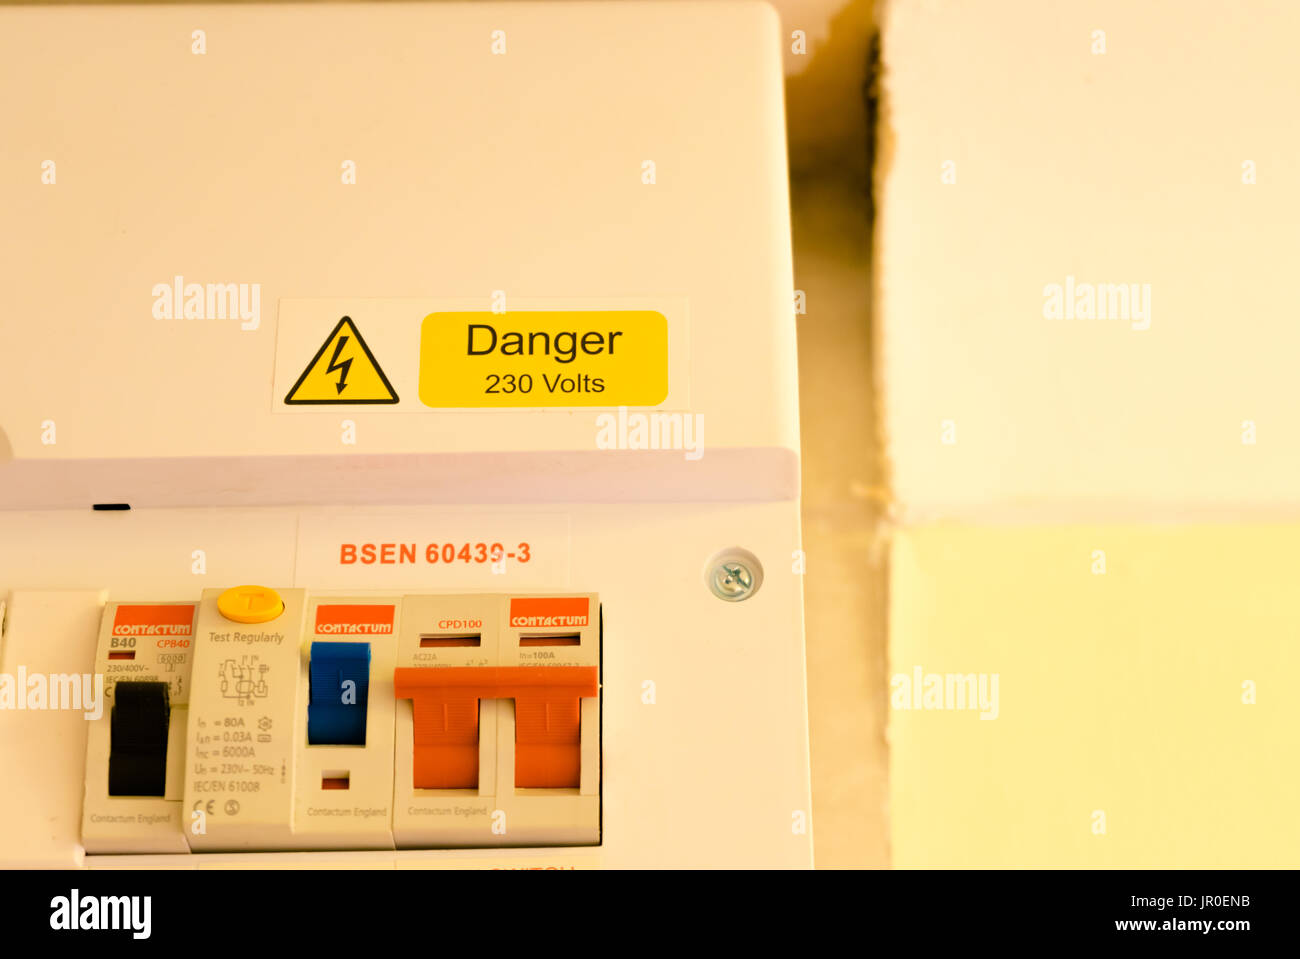 England Fuse Box Basic Wiring Diagram Danger 230 Volts Sign On A Uk Stock Photo 151831607 Alamy Rh Com